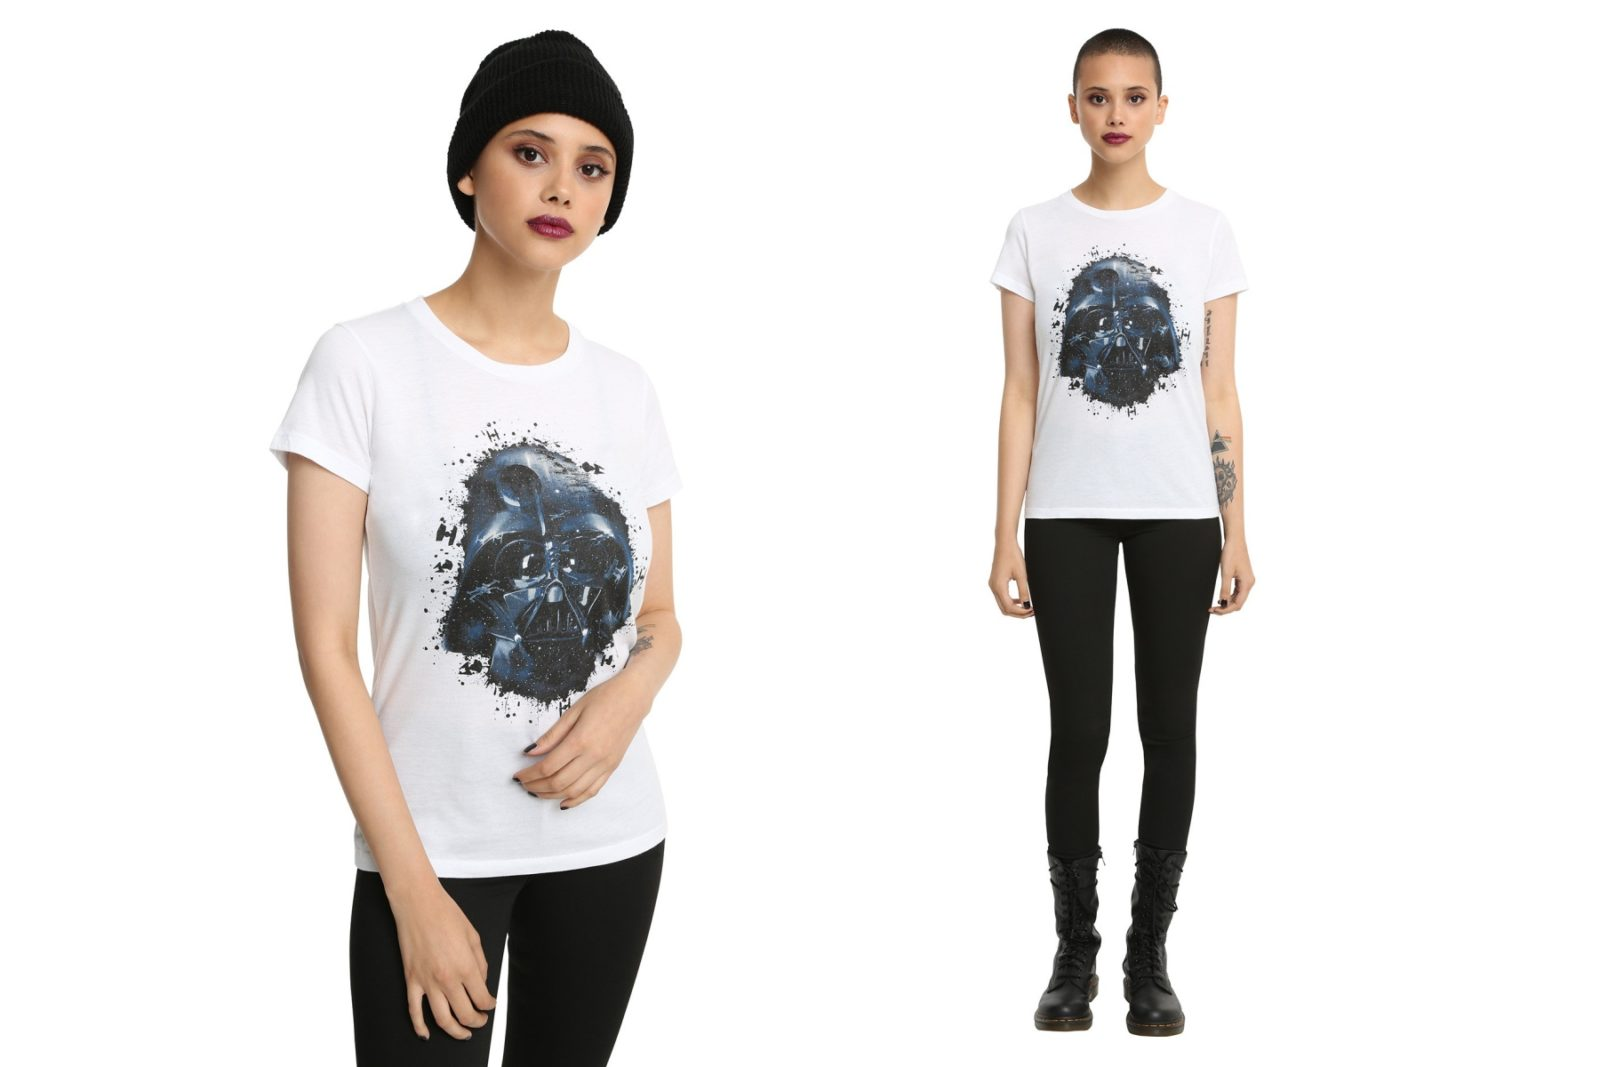 Women's Darth Vader T-Shirt at Hot Topic